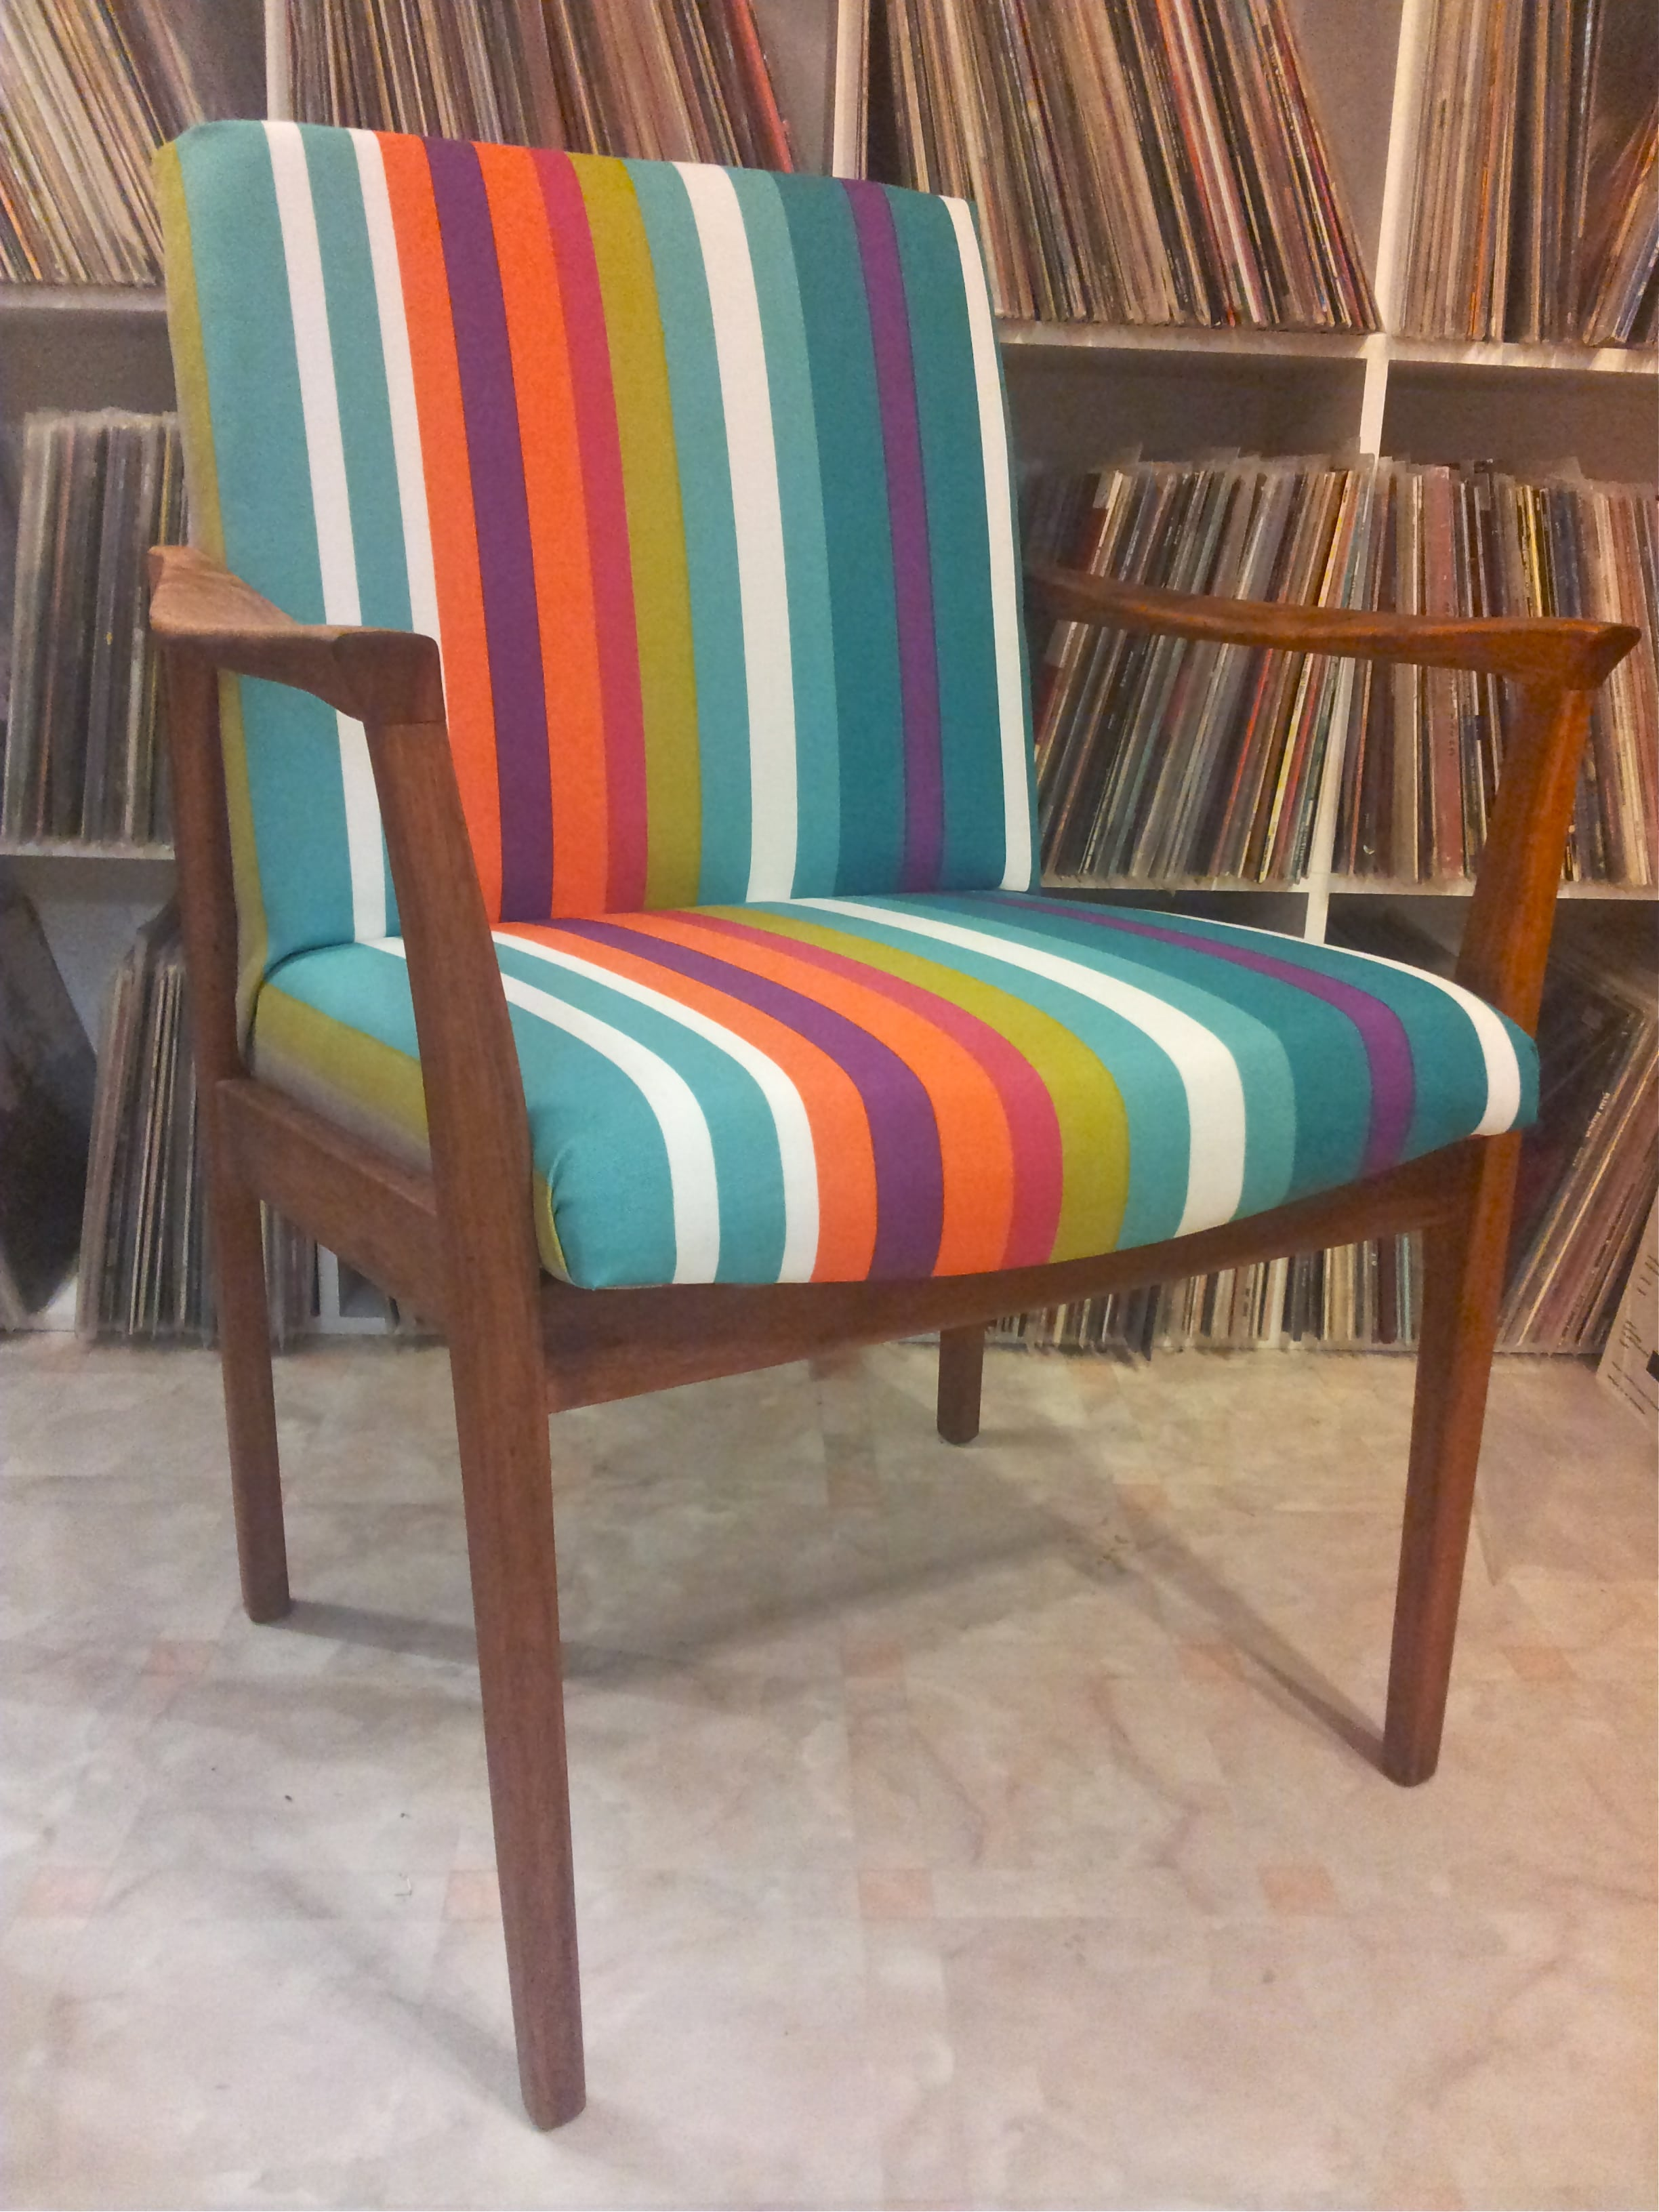 silla vintage colorida